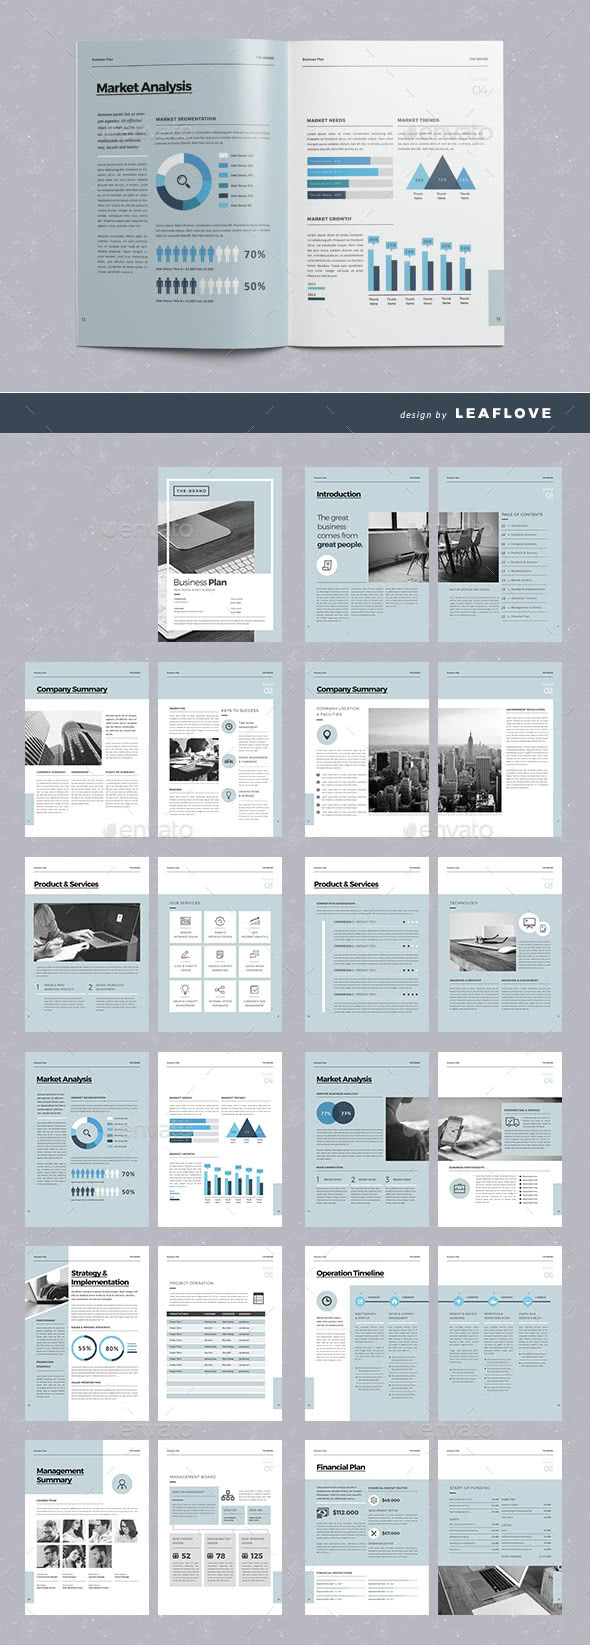 Data Driven Report InDesign Template Preview